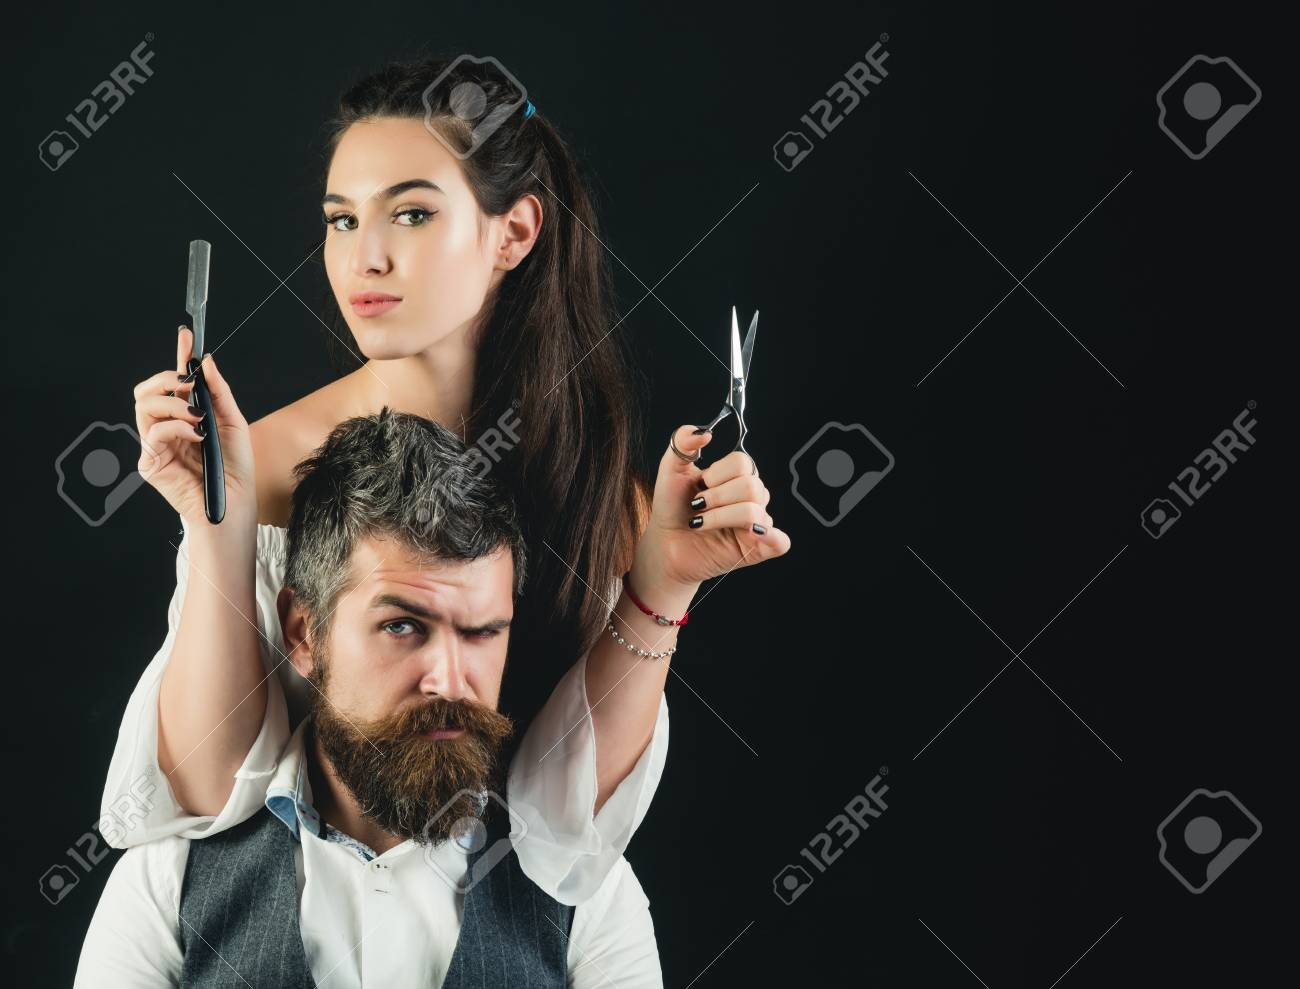 Young handsome man with long beard and moustache on serious face with young woman cutting with scissors - 98726253